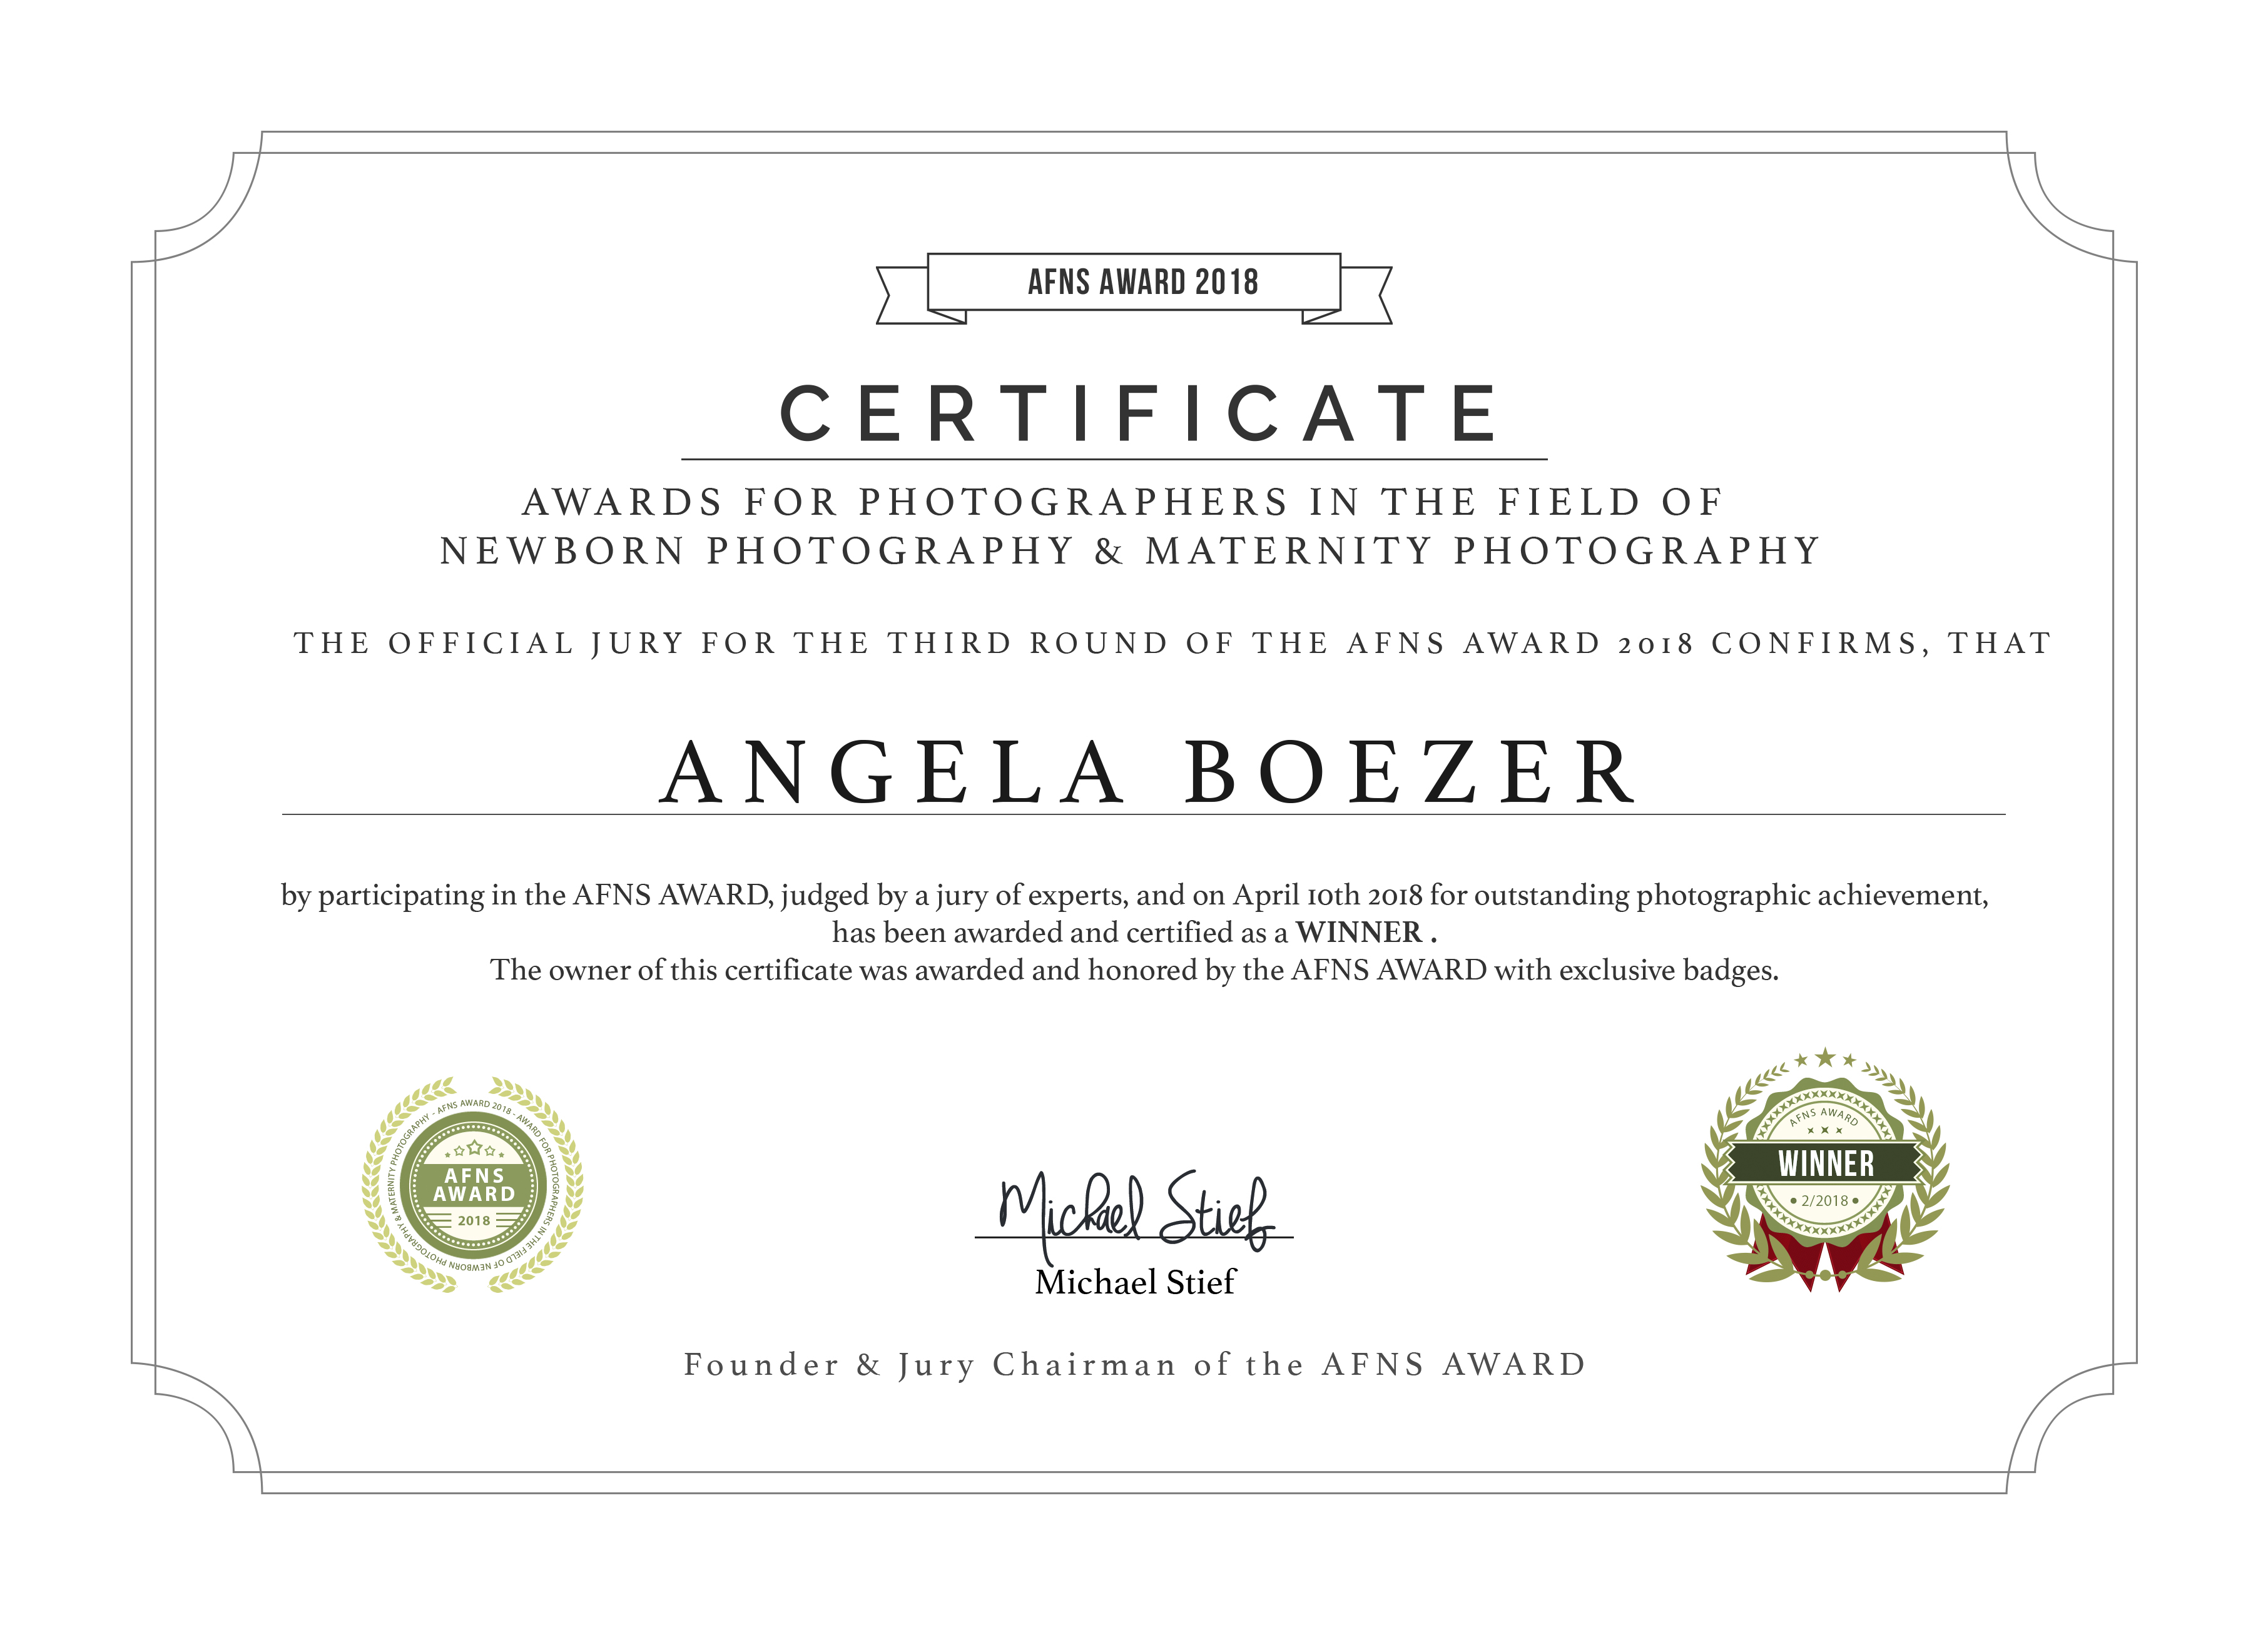 Certificaat, award, prijs, newbornaward, internationaal, fotograaf, newborn, awardwinning, newbornfotograaf, drunen